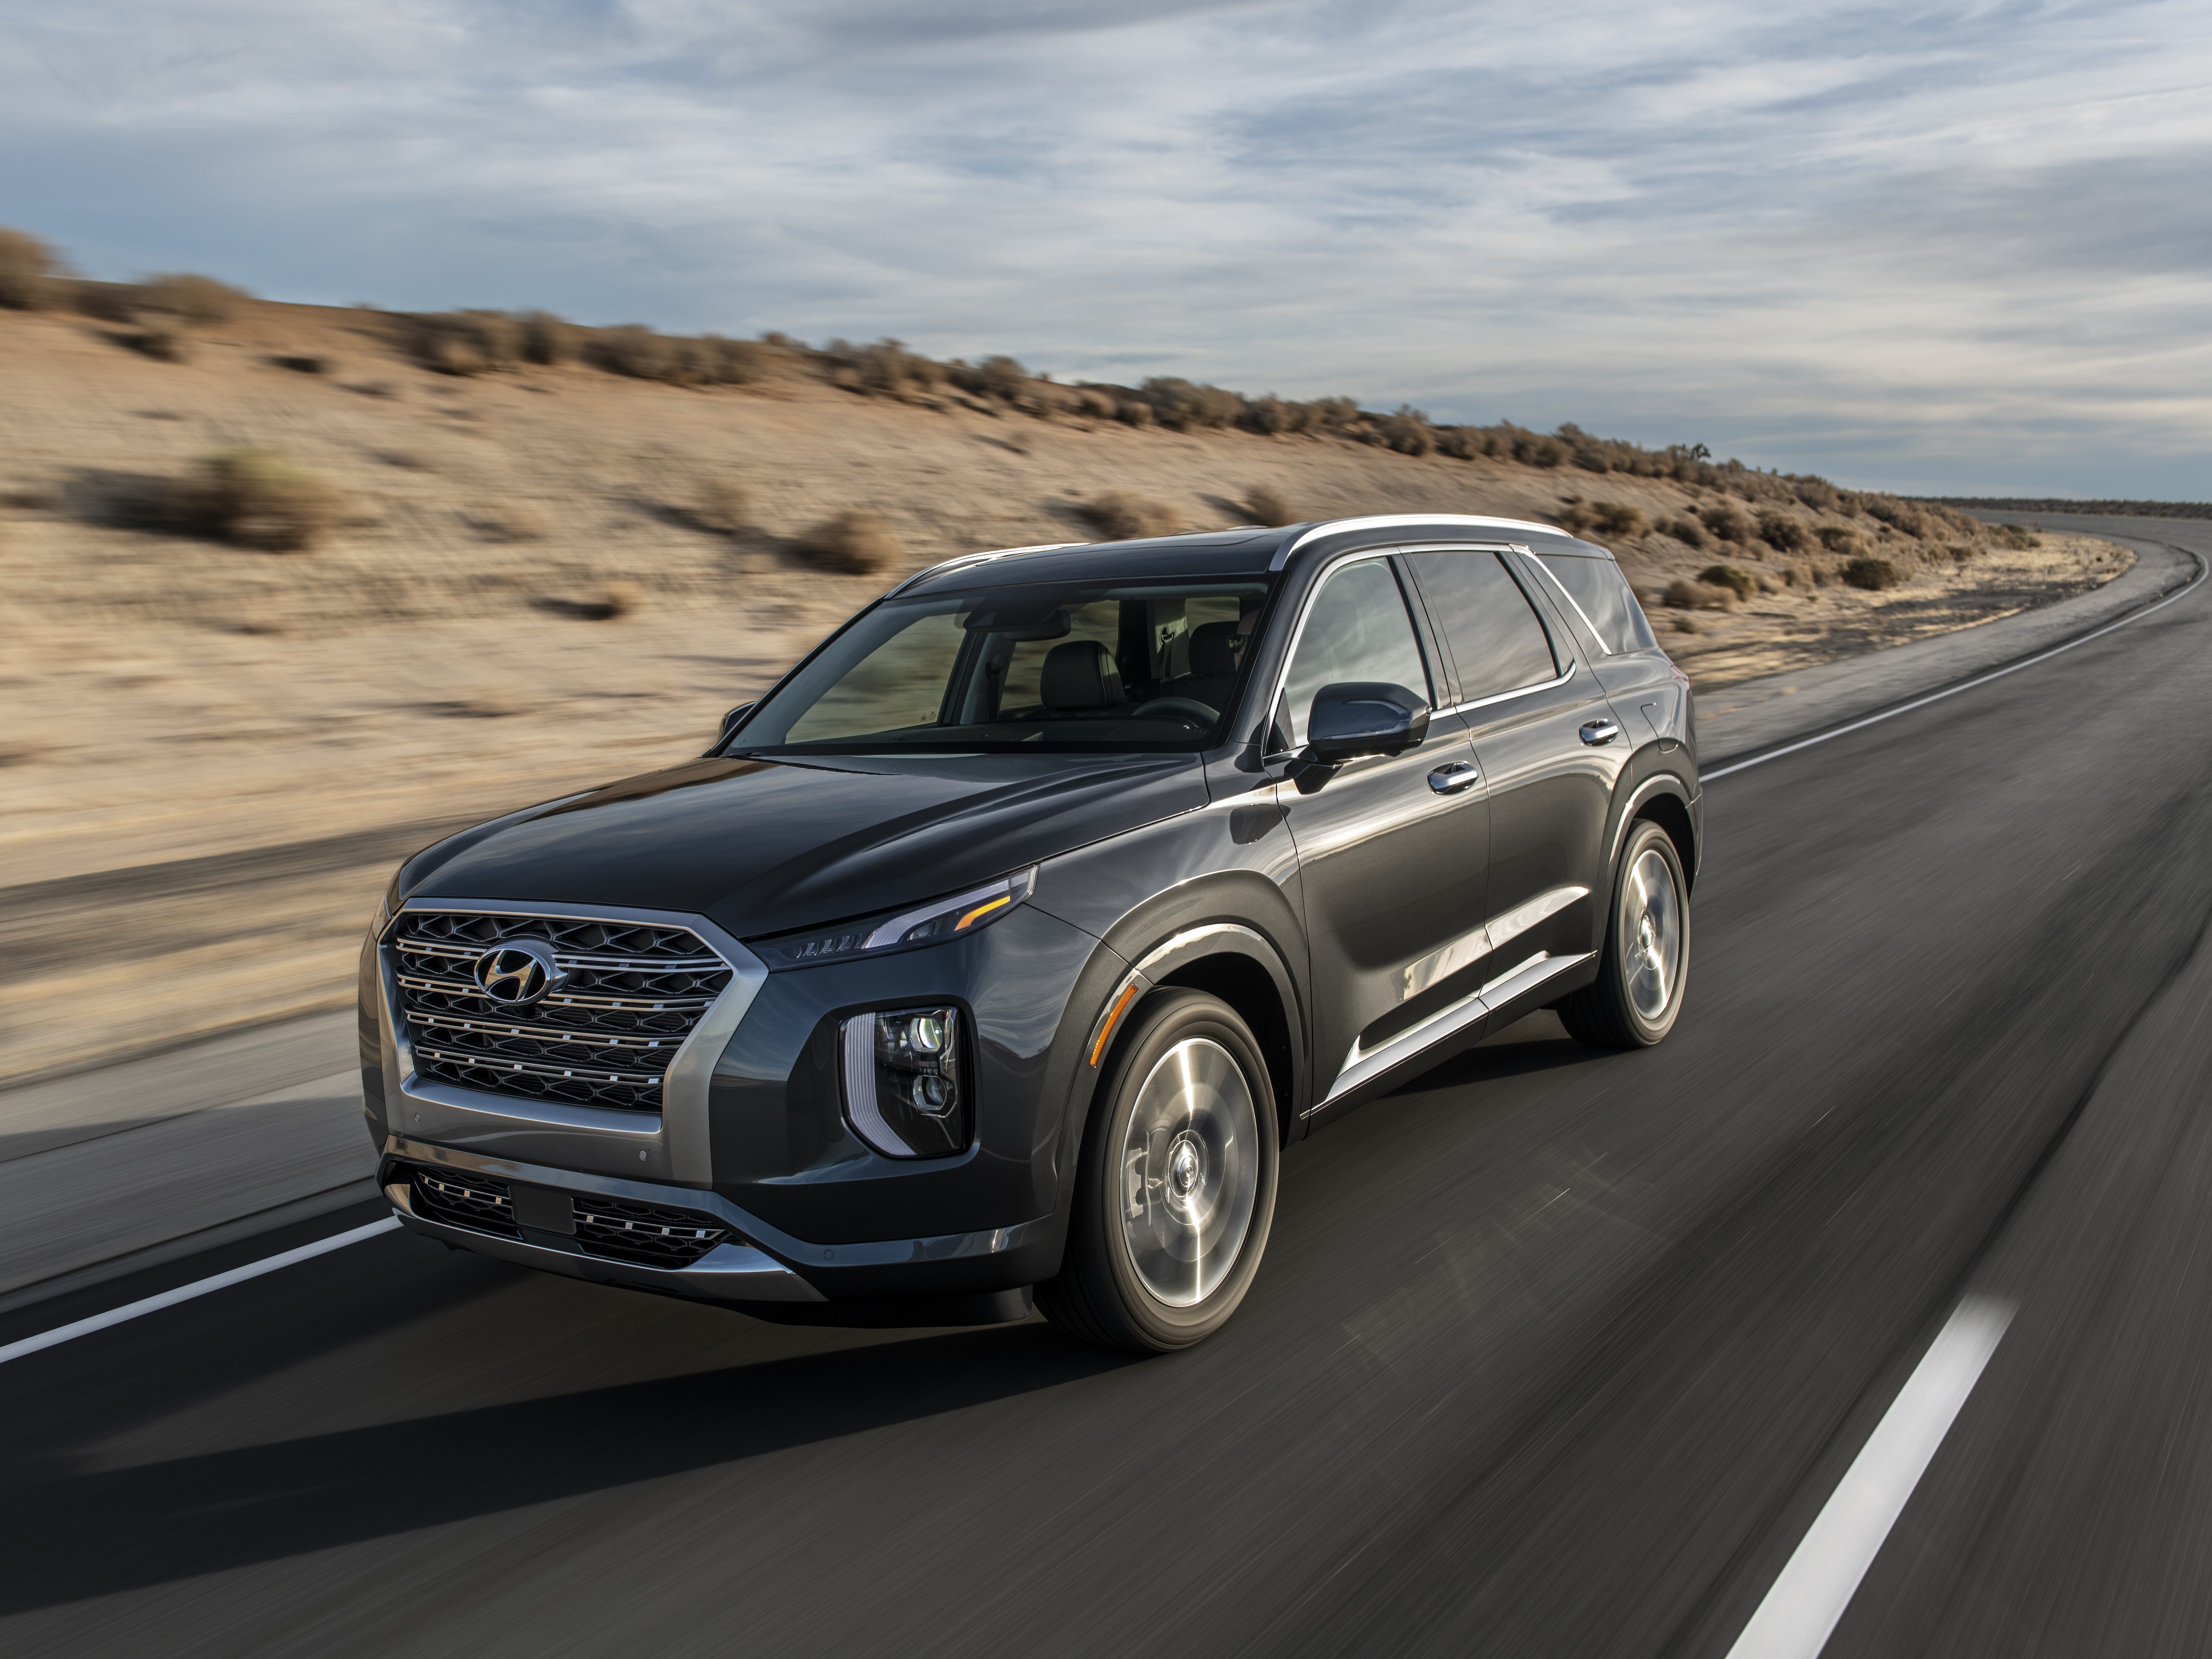 The 2020 Hyundai Palisade SUV.